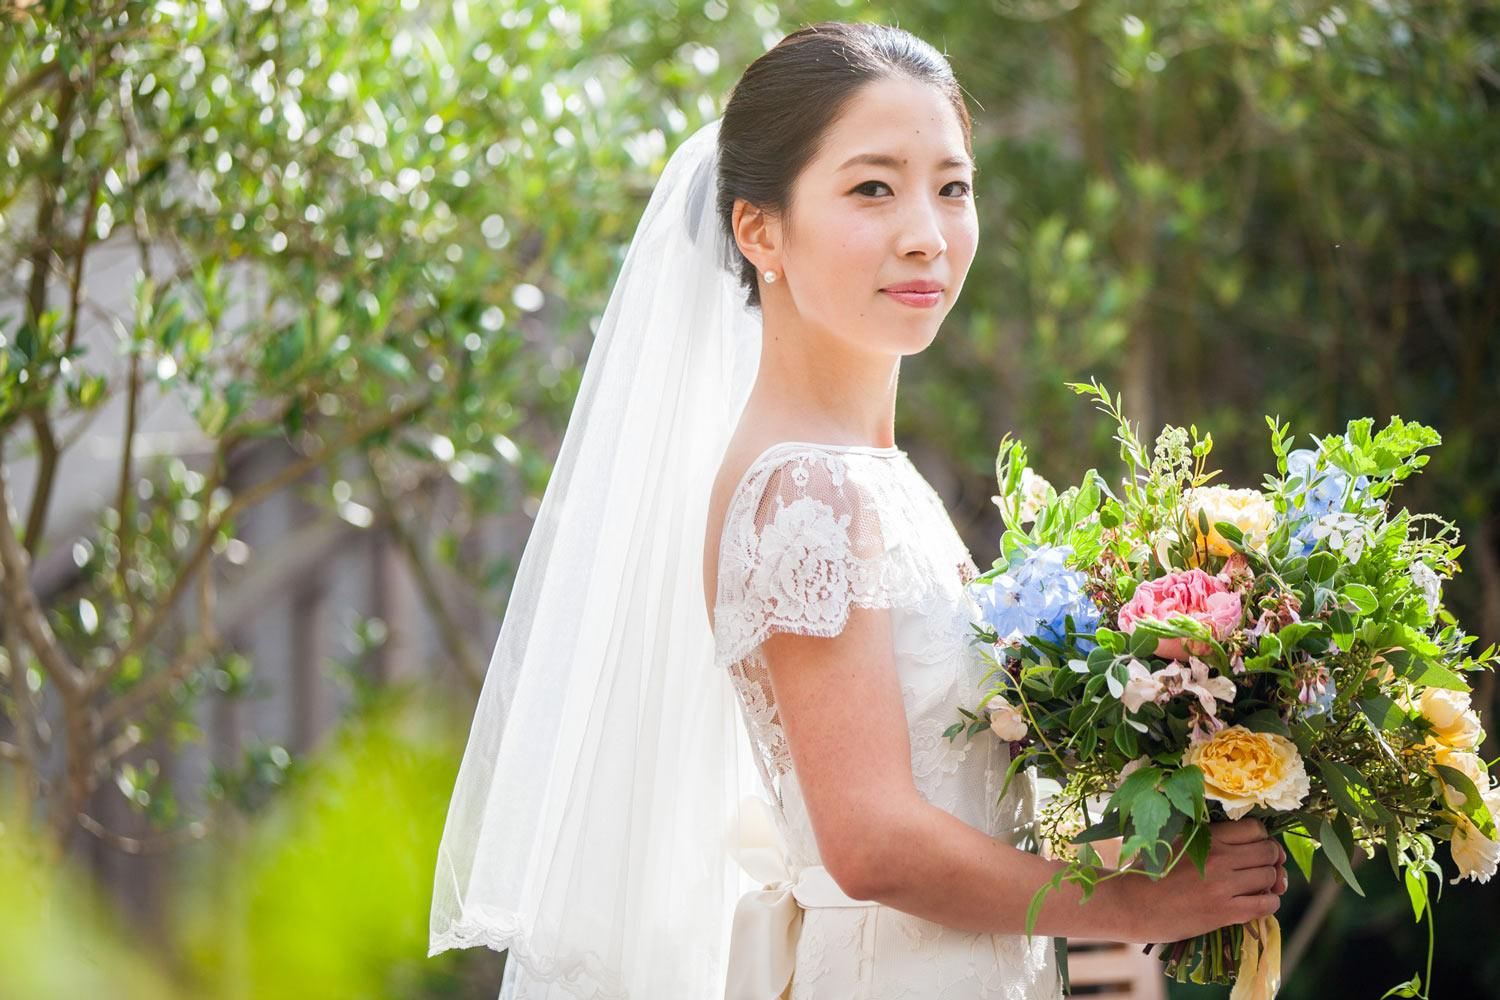 Japanese bride holding garden bouquet in garden